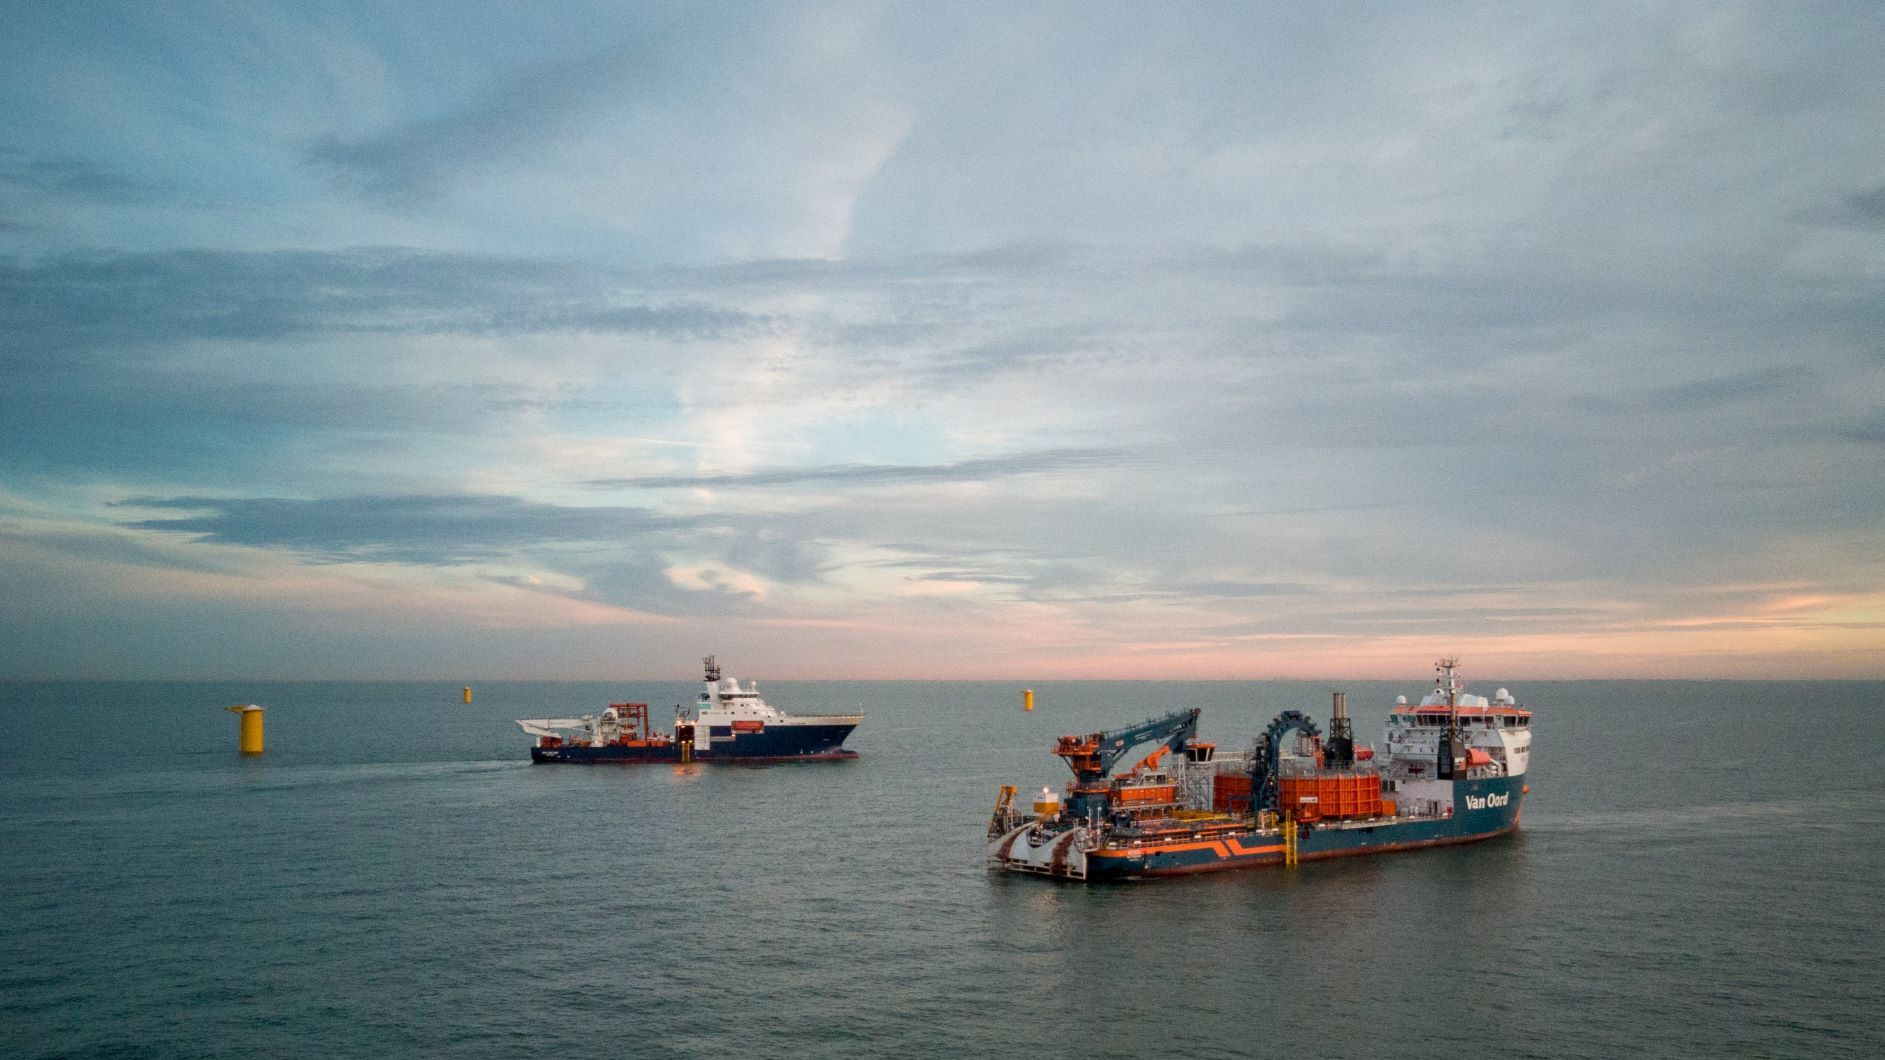 Van Oord Nexus cable laying vessel from Norther wind farm offshore high voltage substation